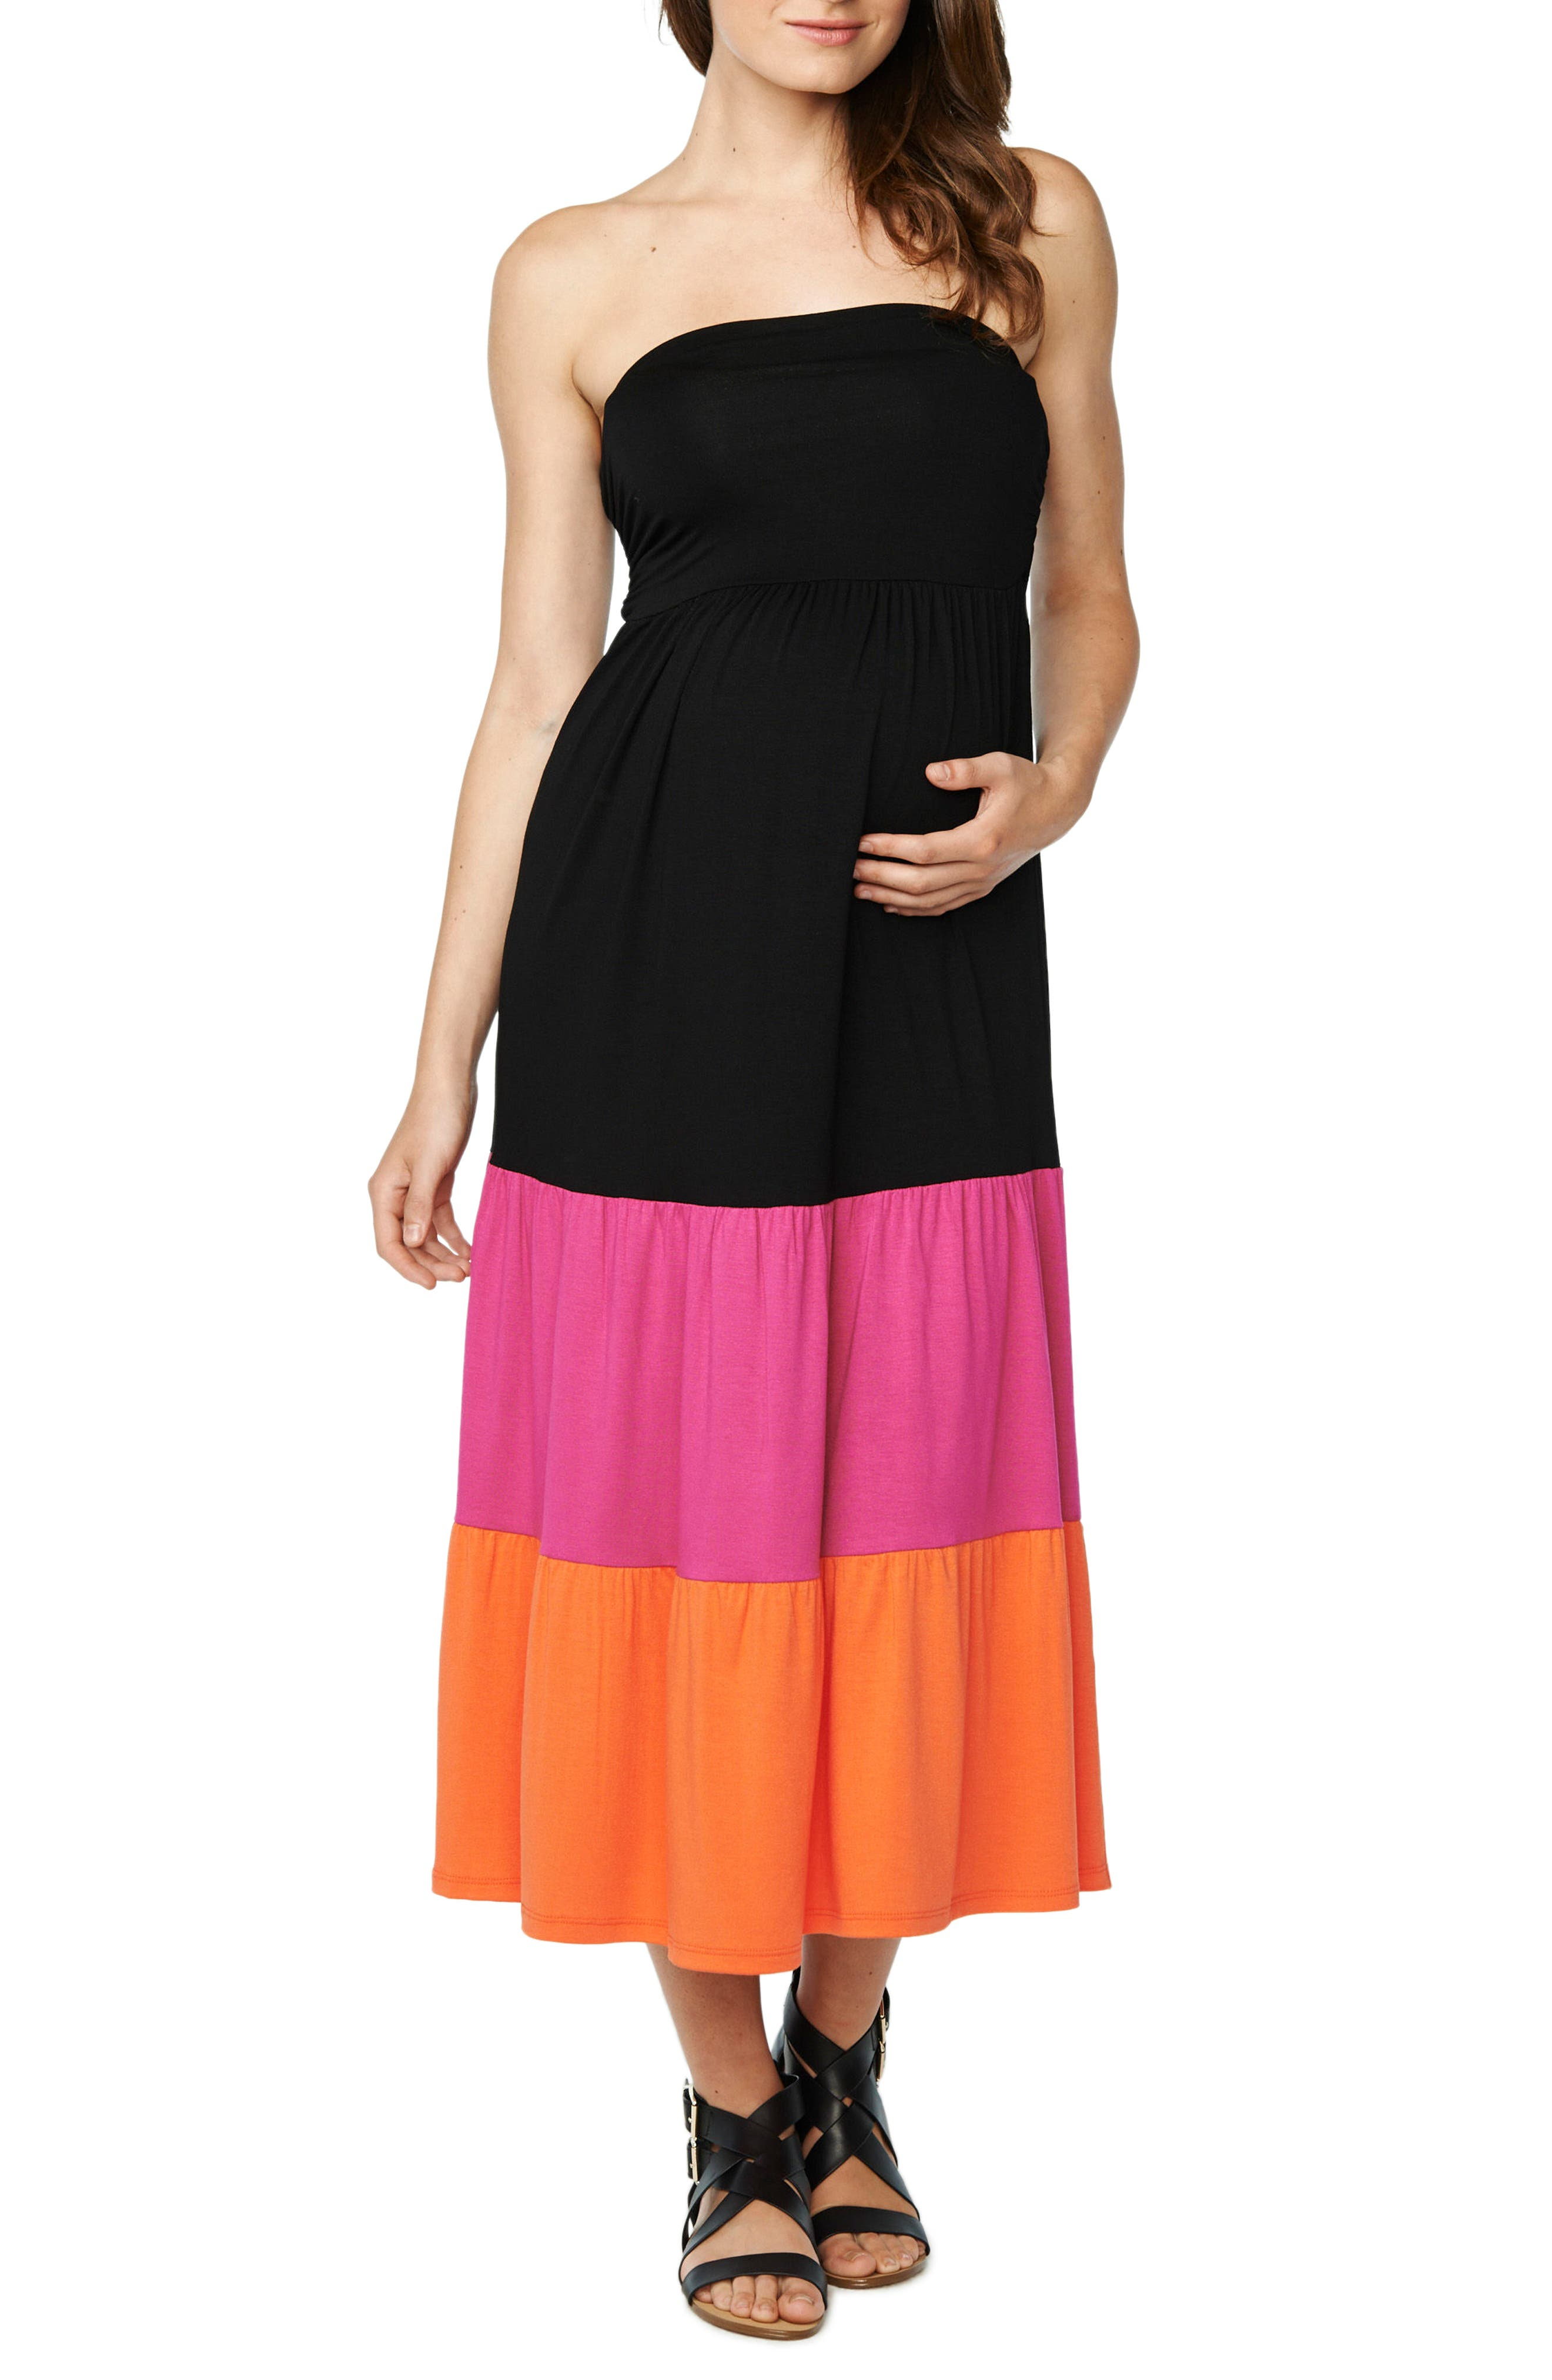 Convertible Strapless Maternity Dress,                         Main,                         color, 001